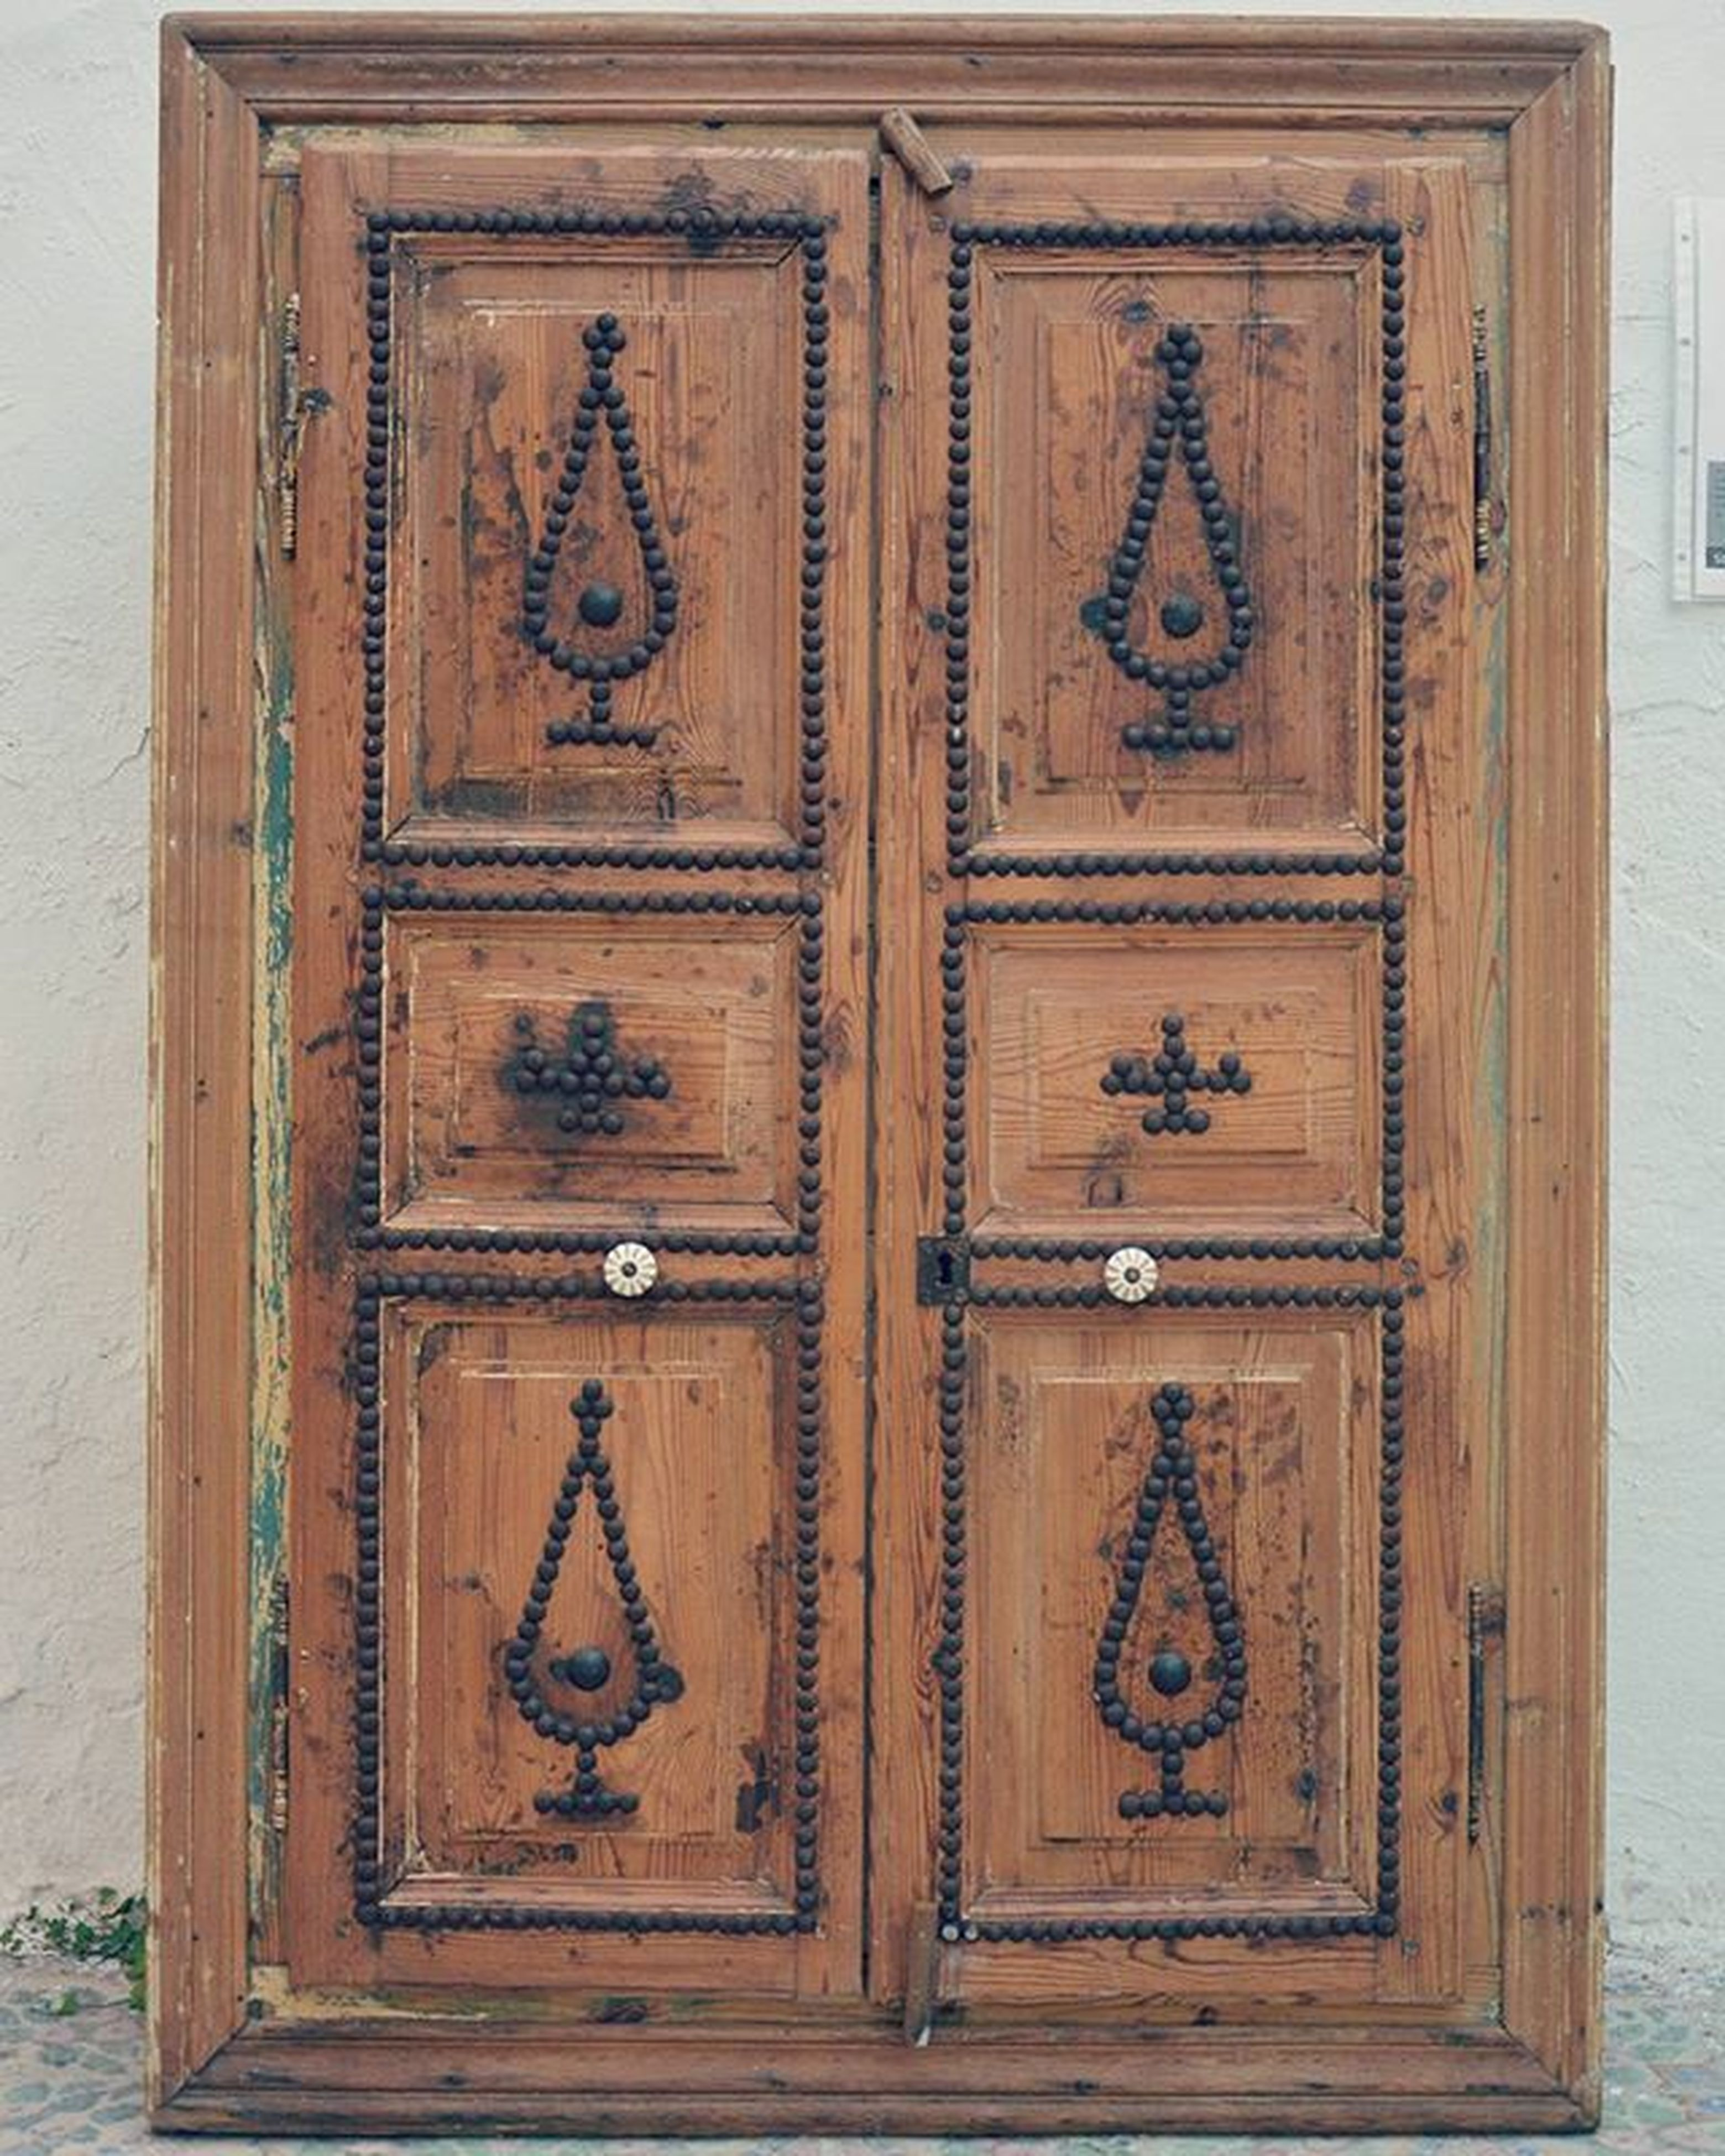 door, closed, built structure, building exterior, architecture, wood - material, wooden, safety, entrance, protection, security, wall - building feature, wood, close-up, metal, old, pattern, house, day, outdoors